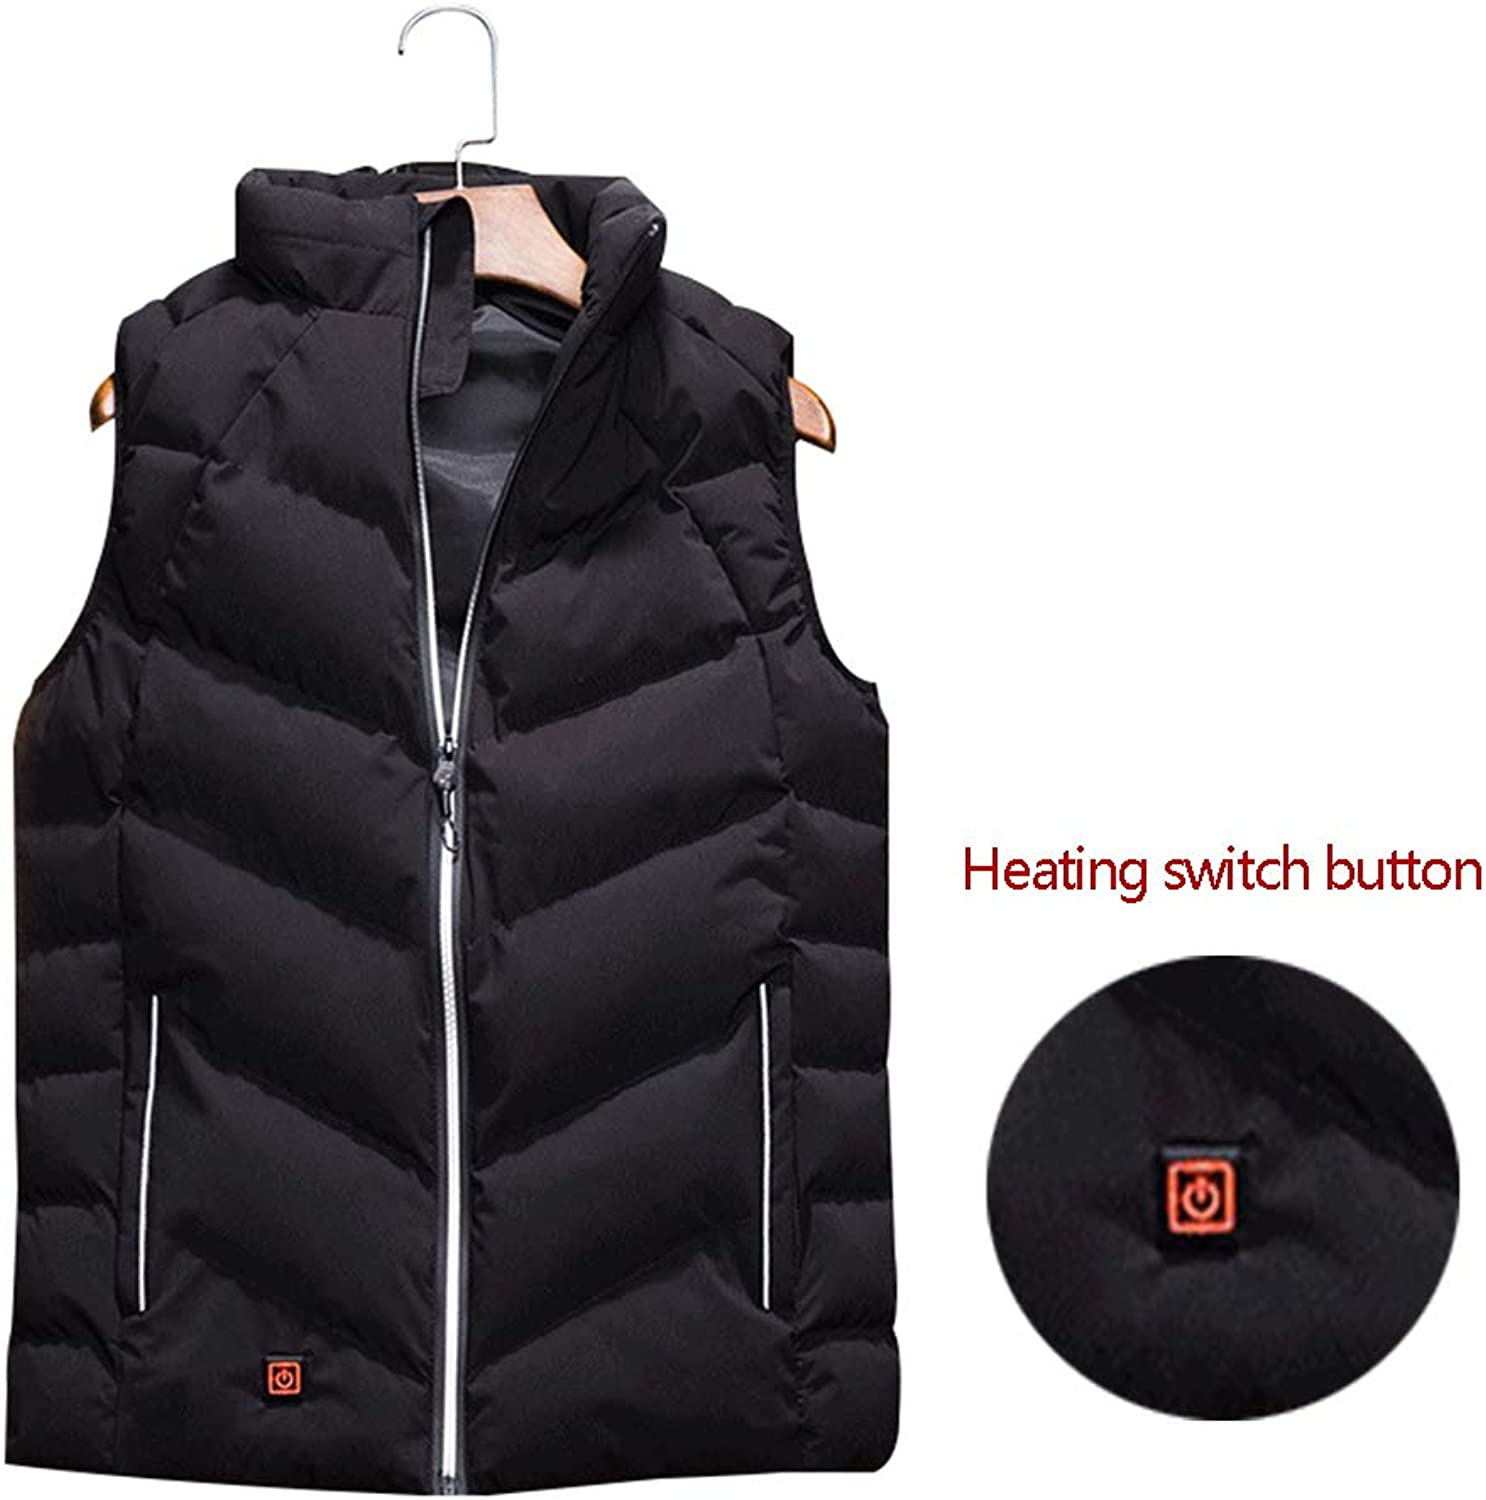 Men Electric Heated Down Vest Fall Winter USB Charging Sleeveless Warmer Jacket Adult Washable Adjustable 3 Temperature Clothing for Warm Gift Outdoor Hike Hunt Fishing Skiing